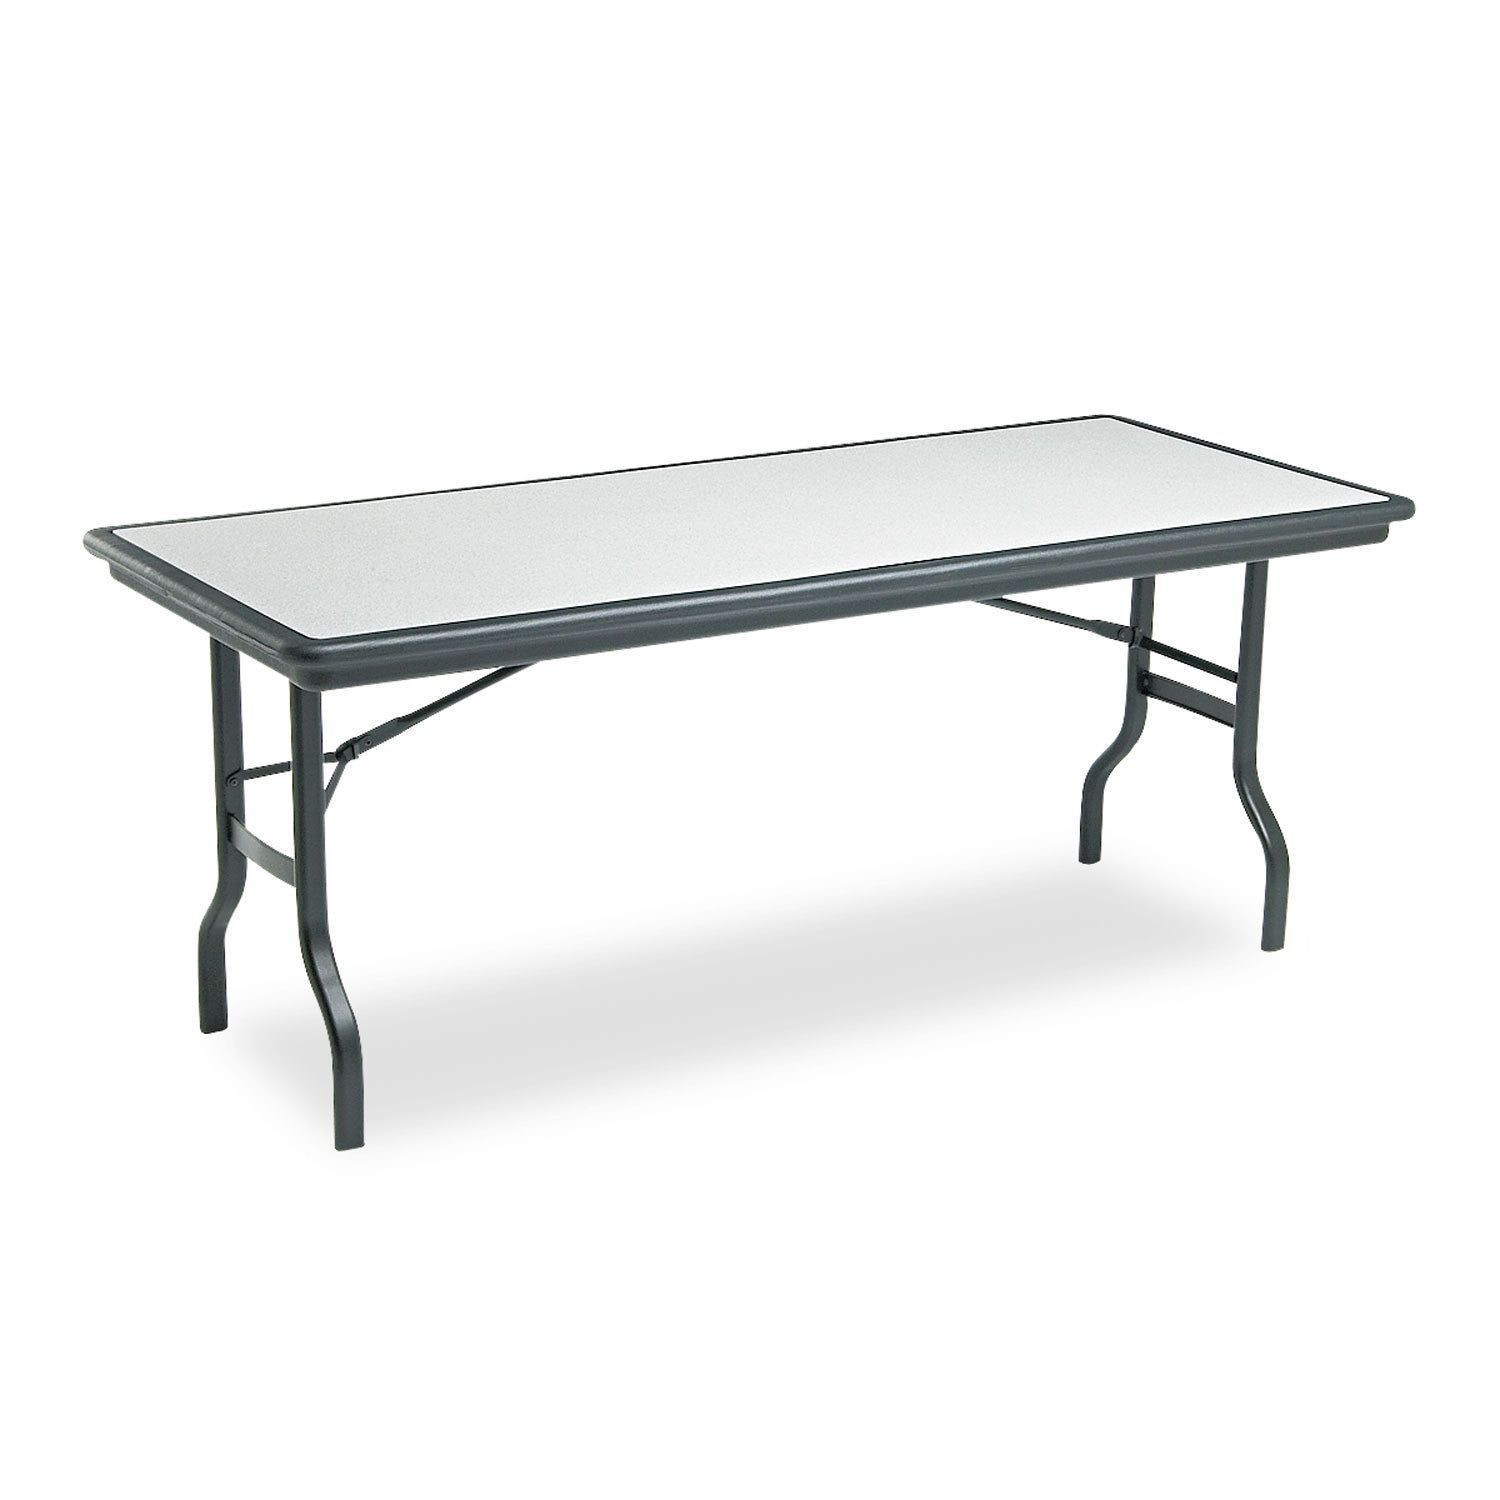 30 inch wide dining table. Iceberg (White) IndestrucTables Resin Rectangular Folding Table 72-inch Wide X 30-inch Deep 29-inch High Granite/Black (Essendant) 30 Inch Dining